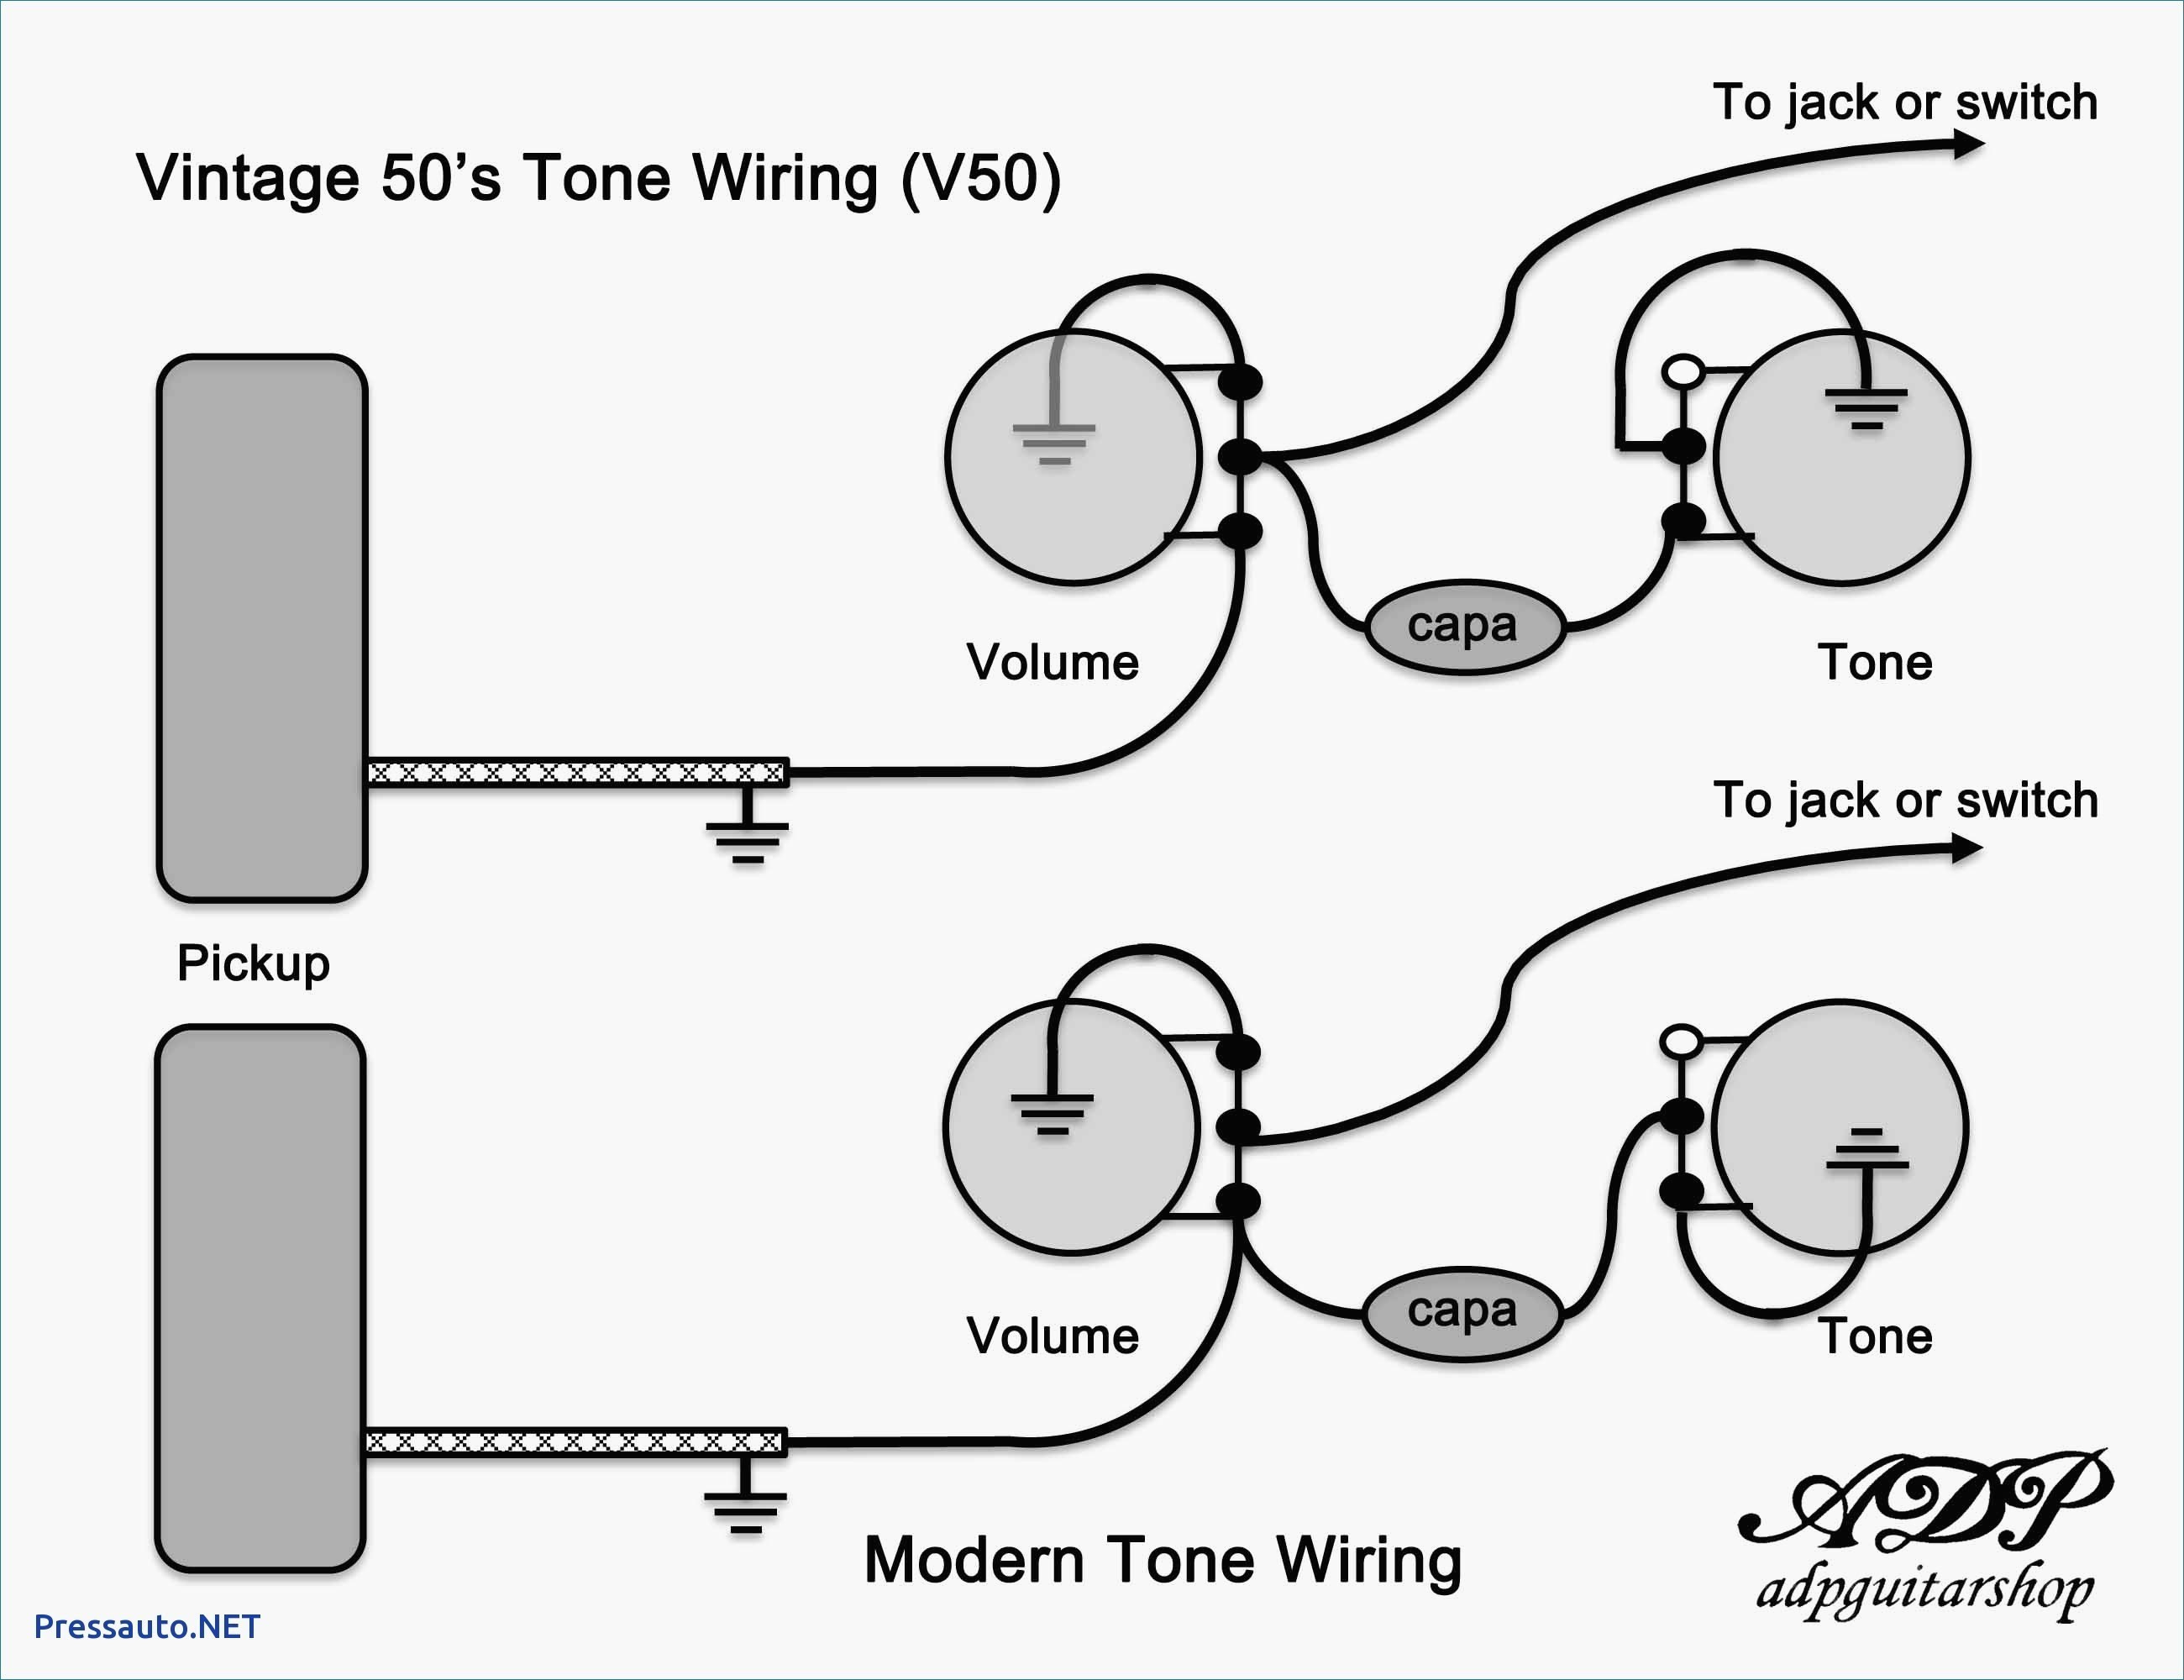 C8B7 Epiphone Les Paul Wiring Diagram | Wiring ResourcesWiring Resources